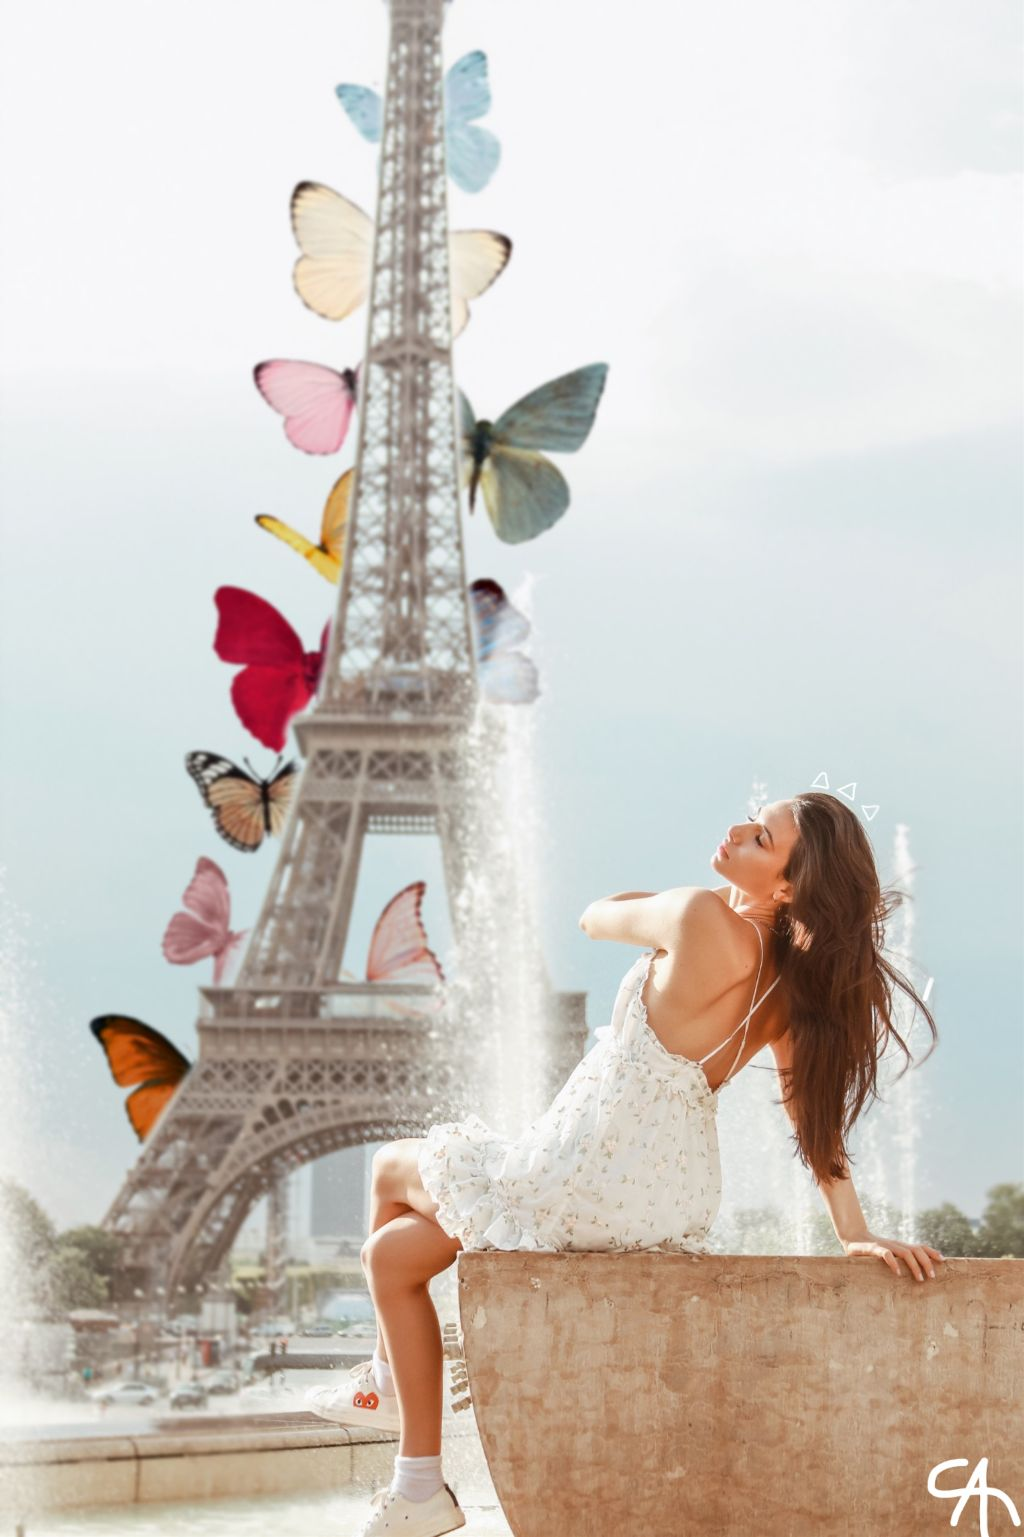 #freetoedit #remixit #girl #paris #eiffeltower #butterfly #butterflies #color #draw #line #lines #white #triangles #water